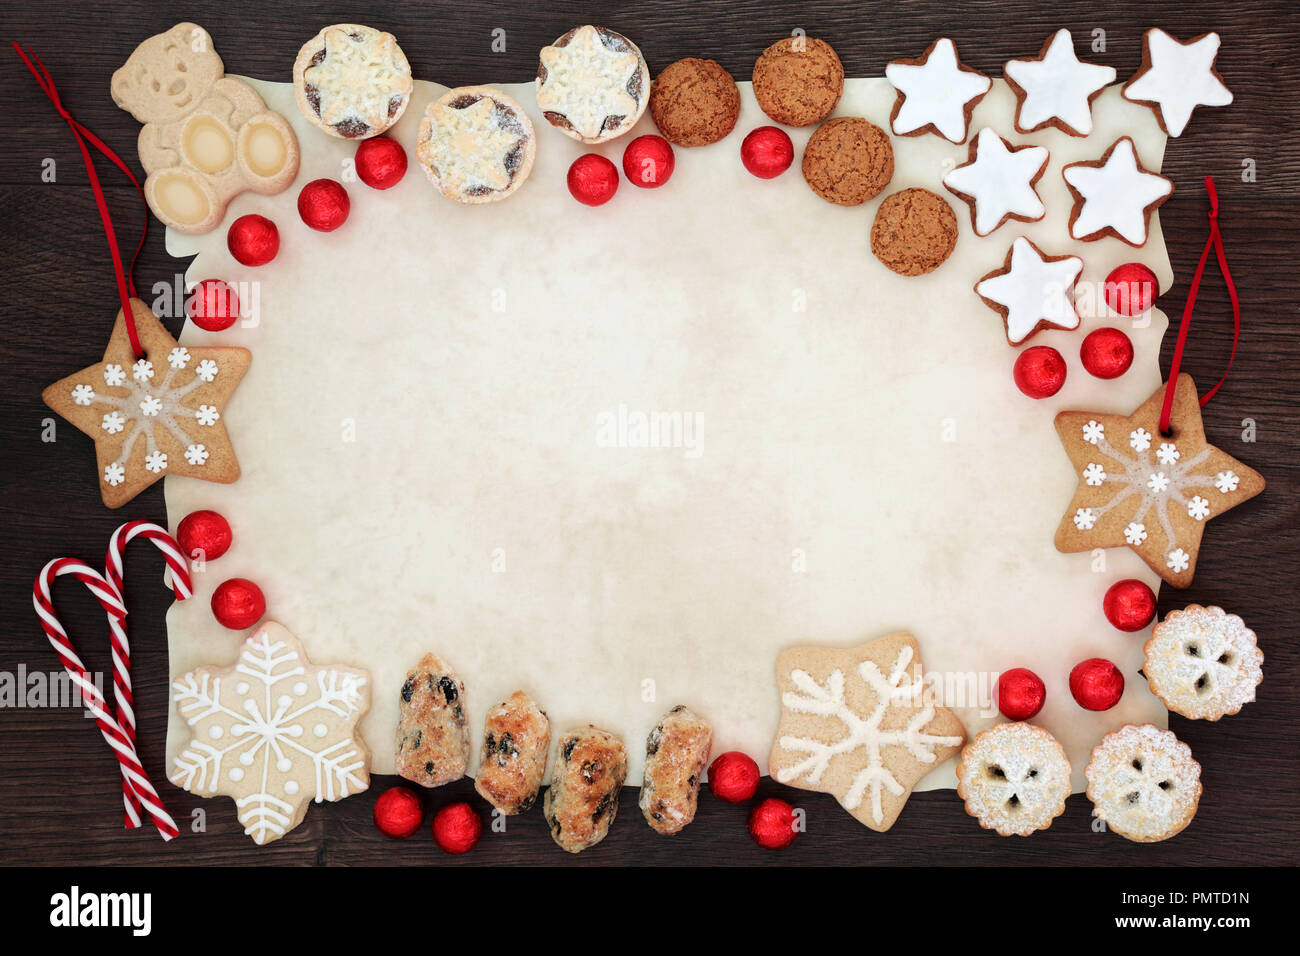 Christmas biscuit background border with delicious homemade biscuits, candy canes, cakes and foil wrapped chocolates on parchment paper on rustic oak  - Stock Image